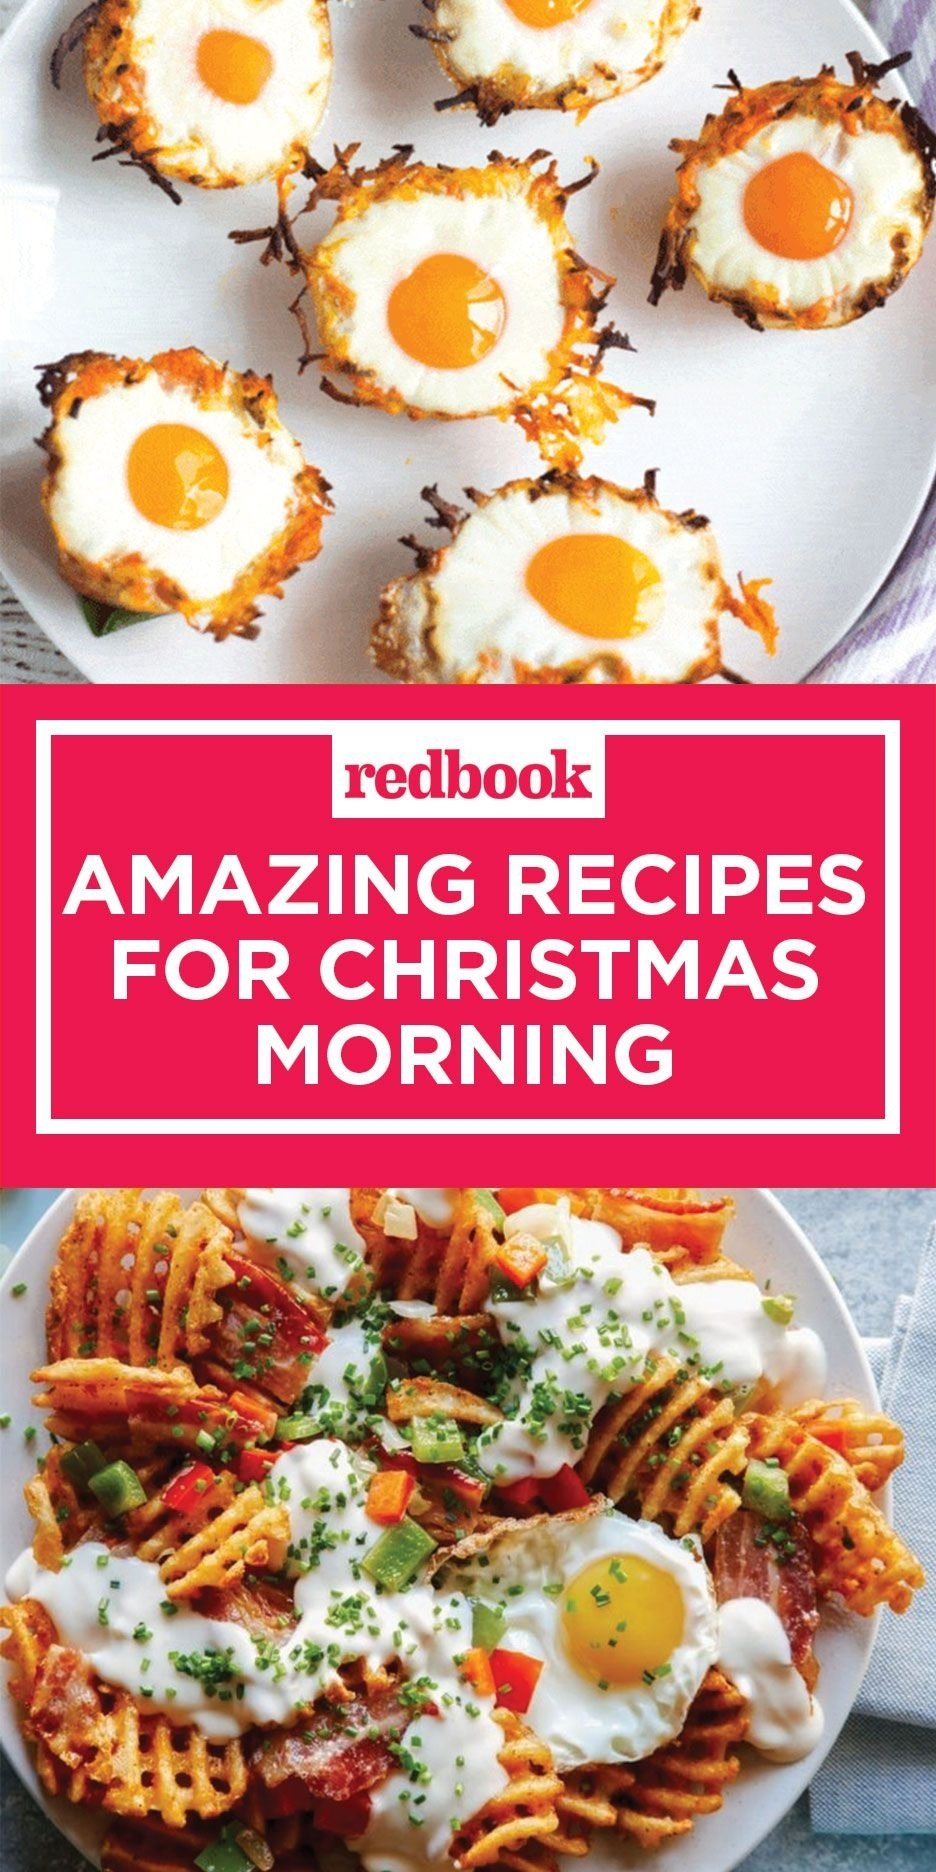 10 Perfect Breakfast Ideas For Christmas Morning 29 easy christmas breakfast ideas best holiday breakfast recipes 2021